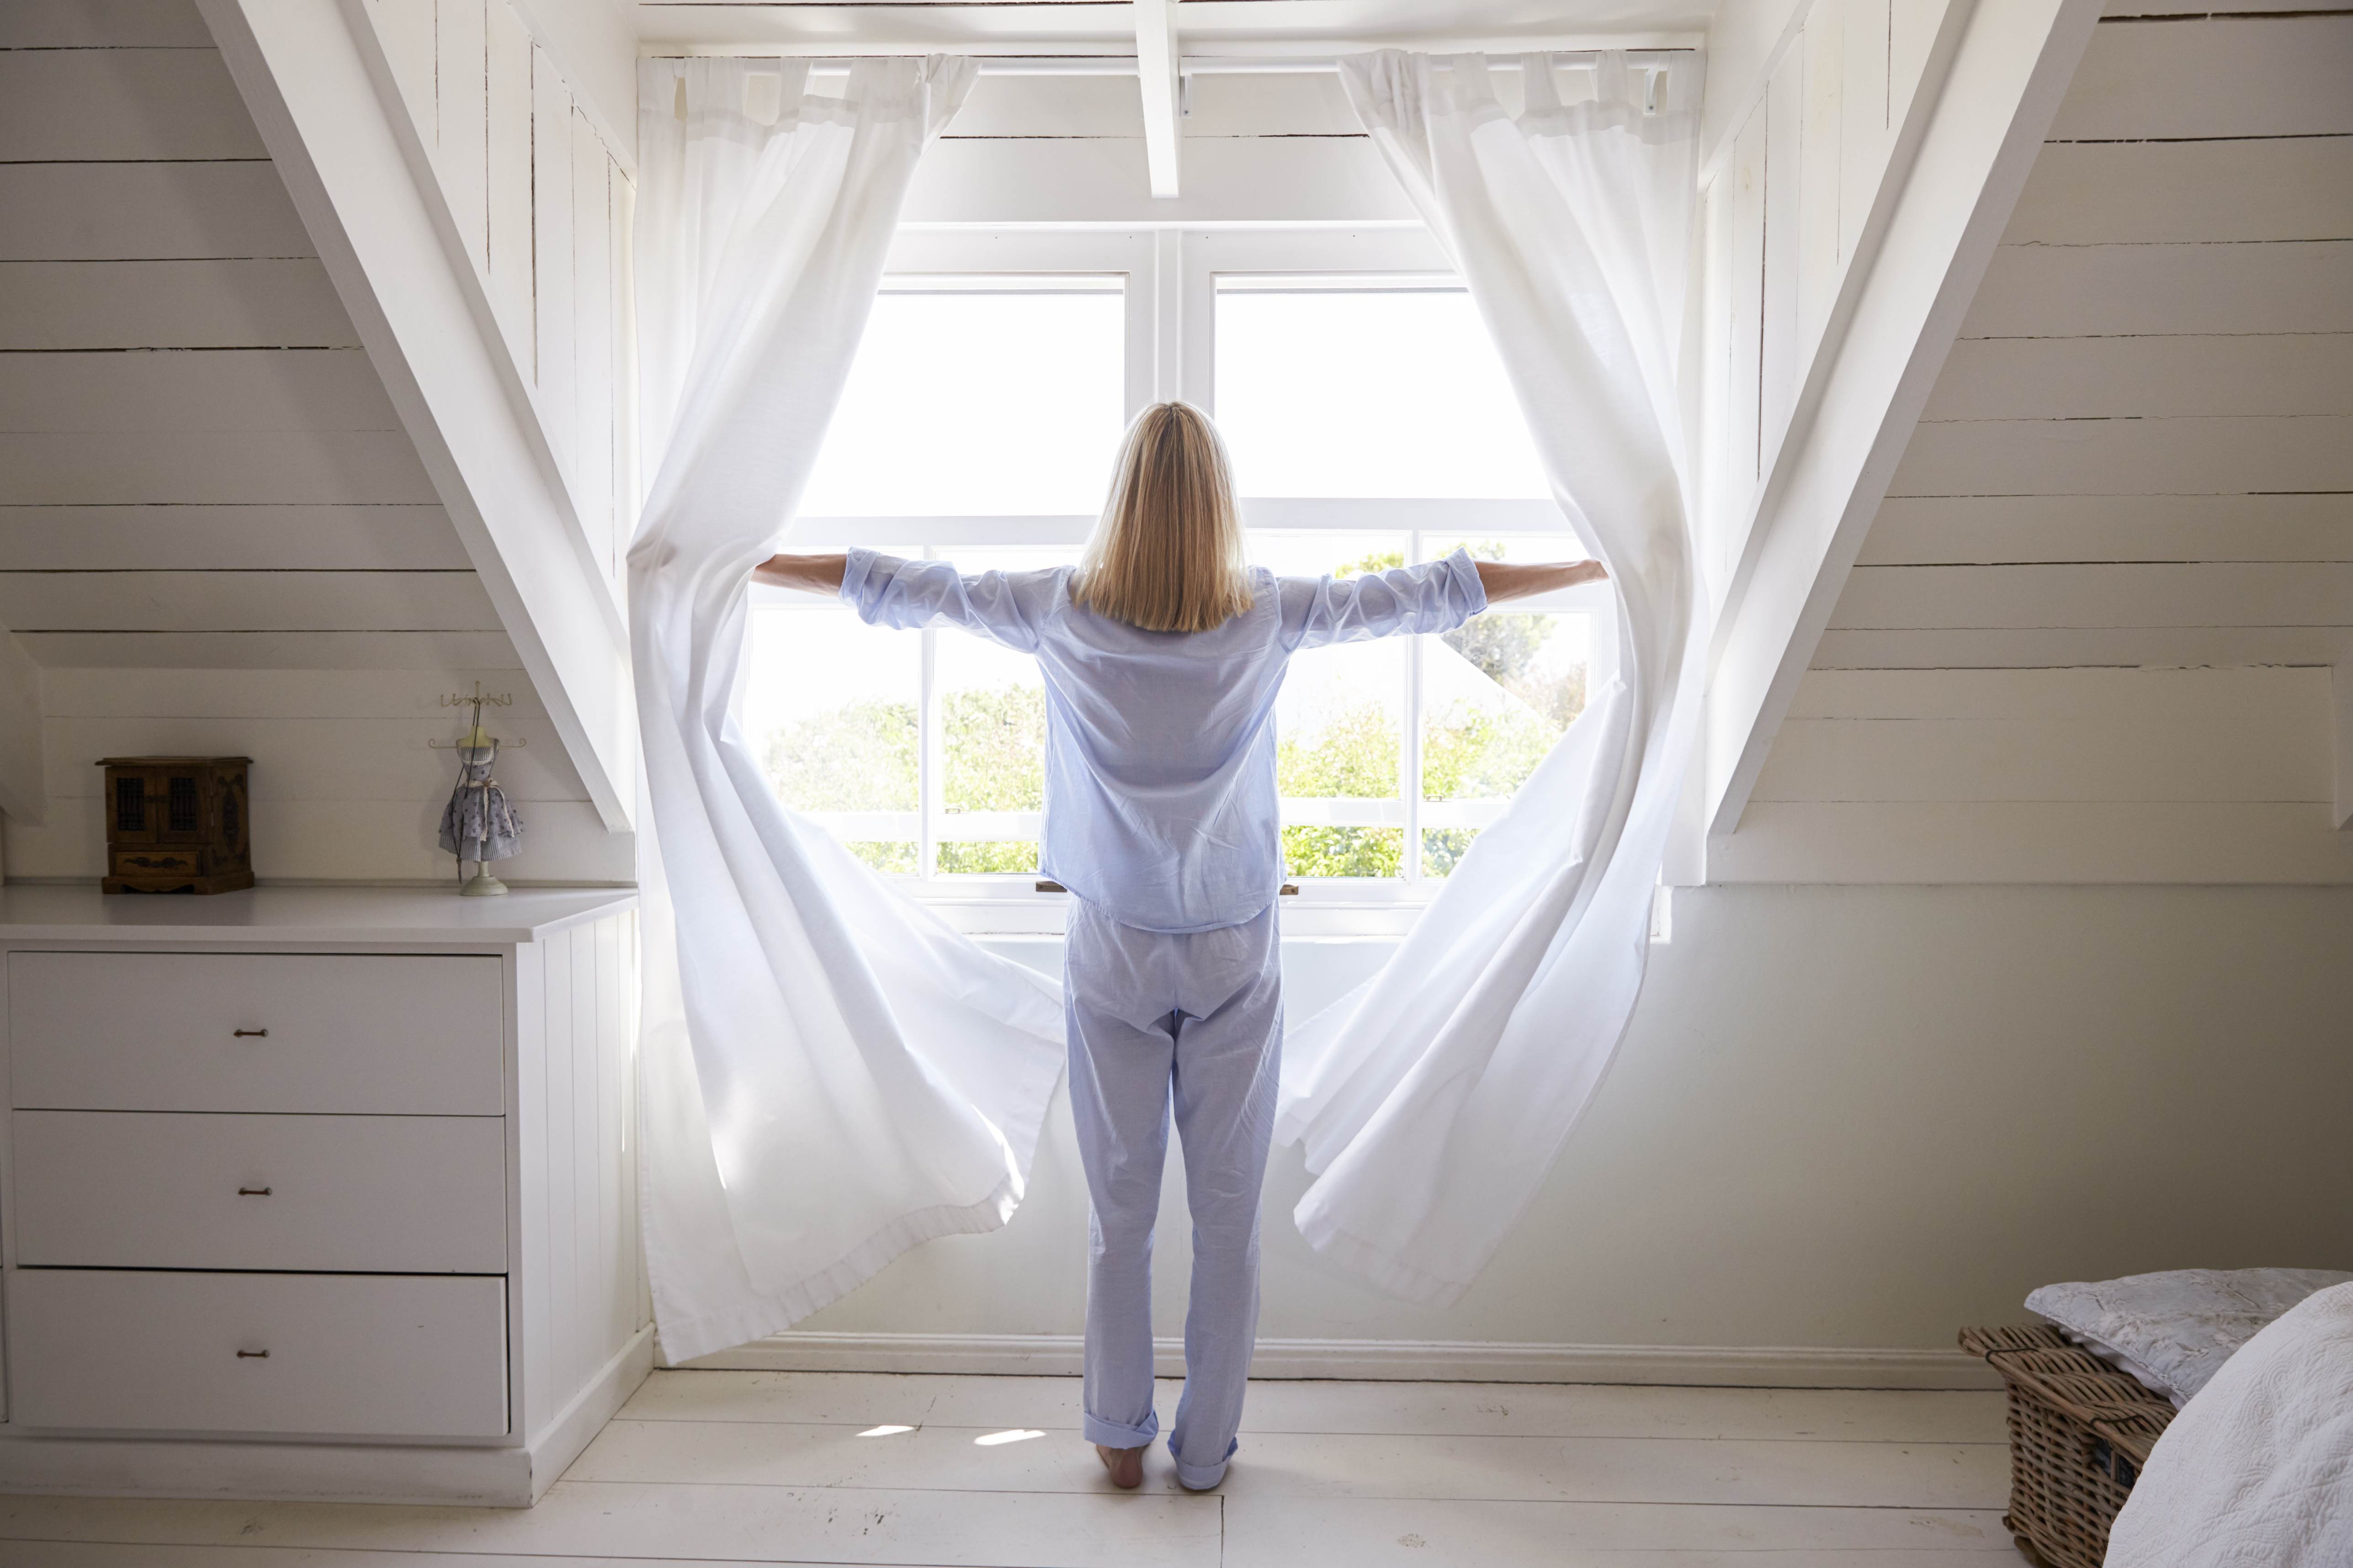 Rear View Of Woman Opening Curtains And Looking Out Of Window